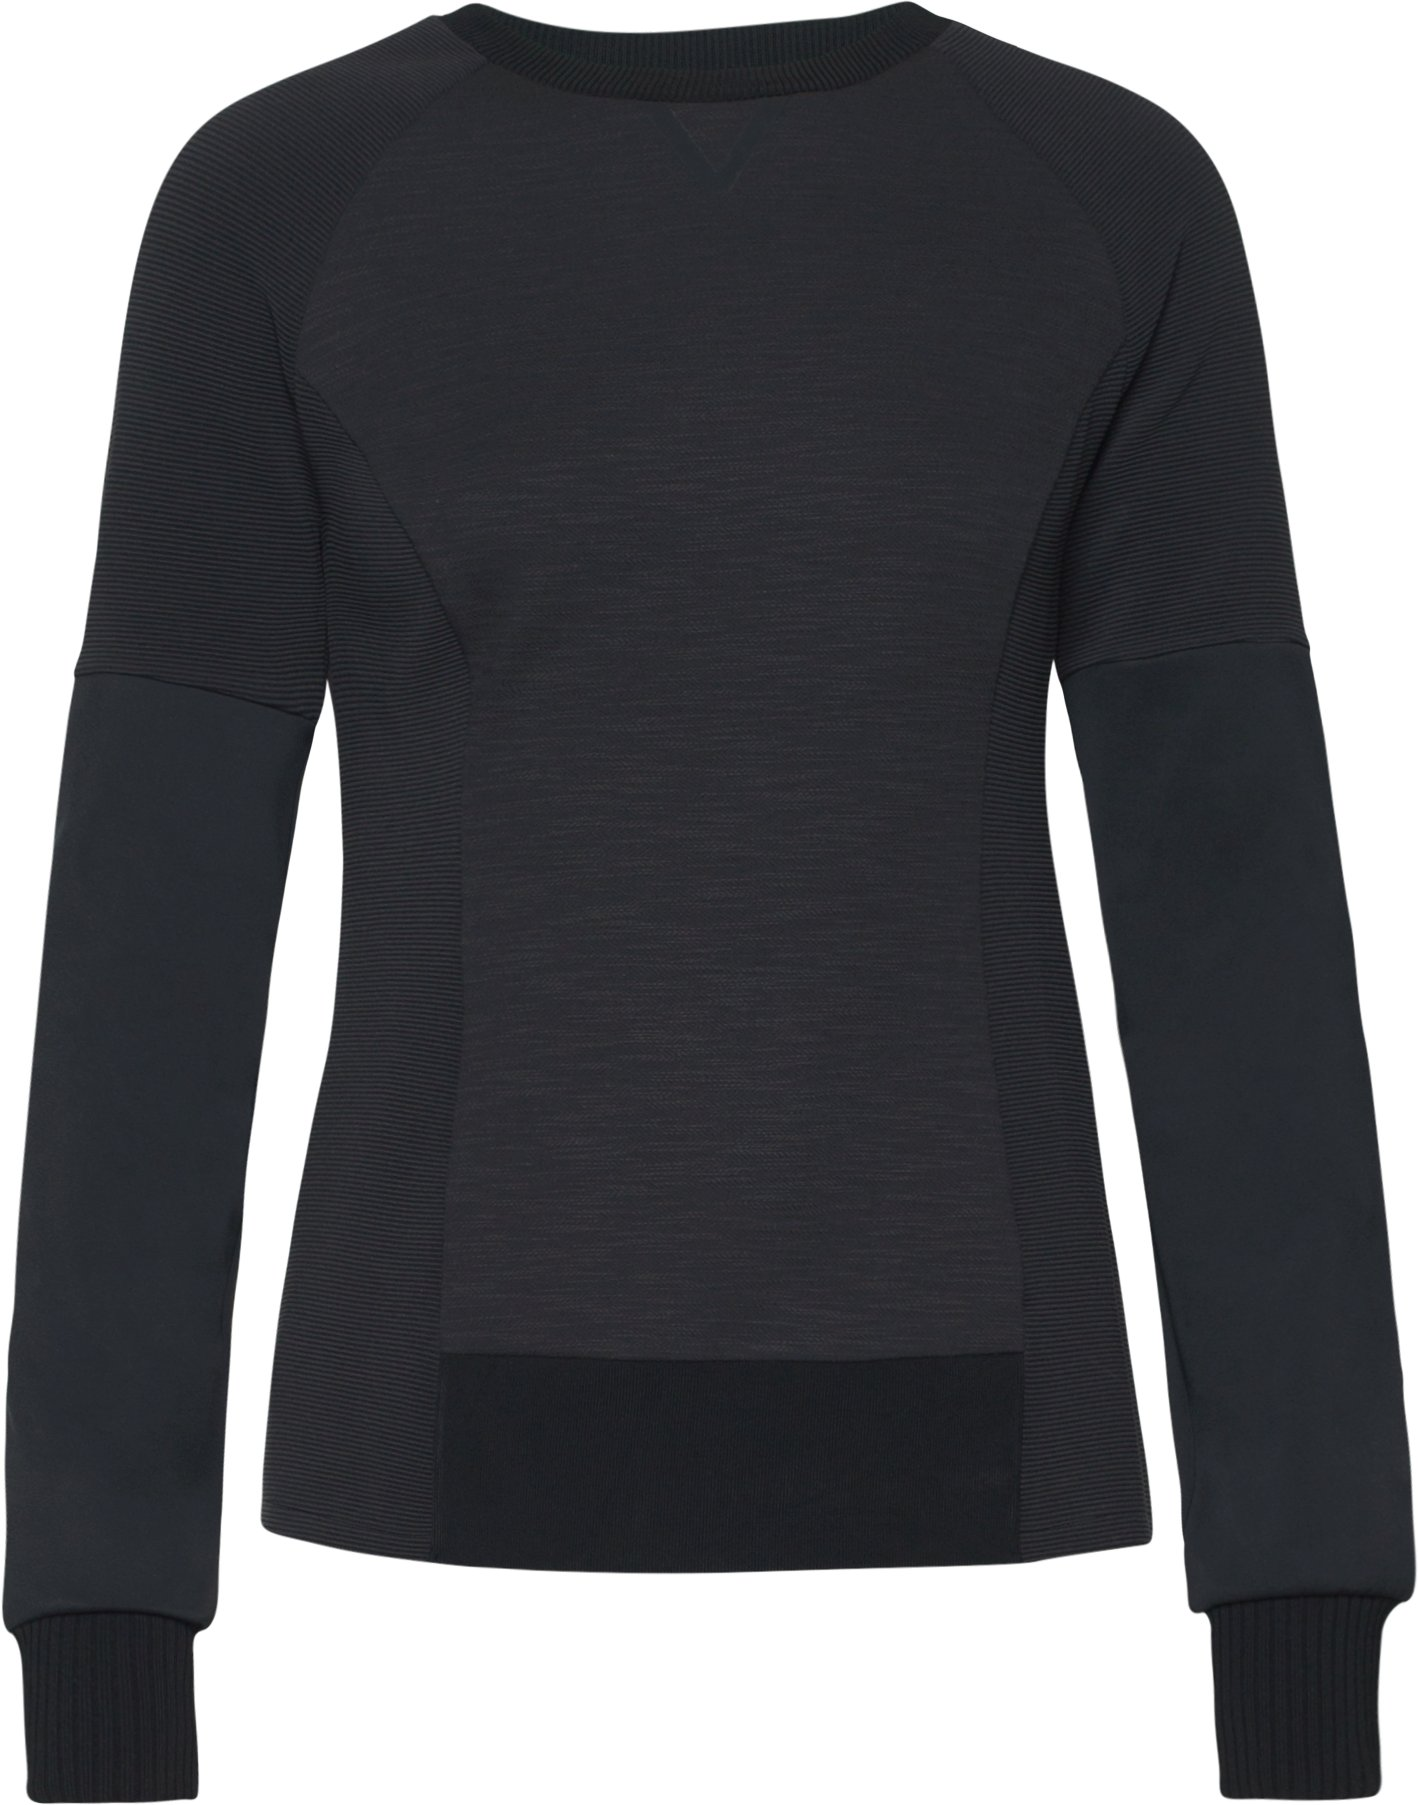 Women's UAS Fitted Crew Sweatshirt, Black , undefined